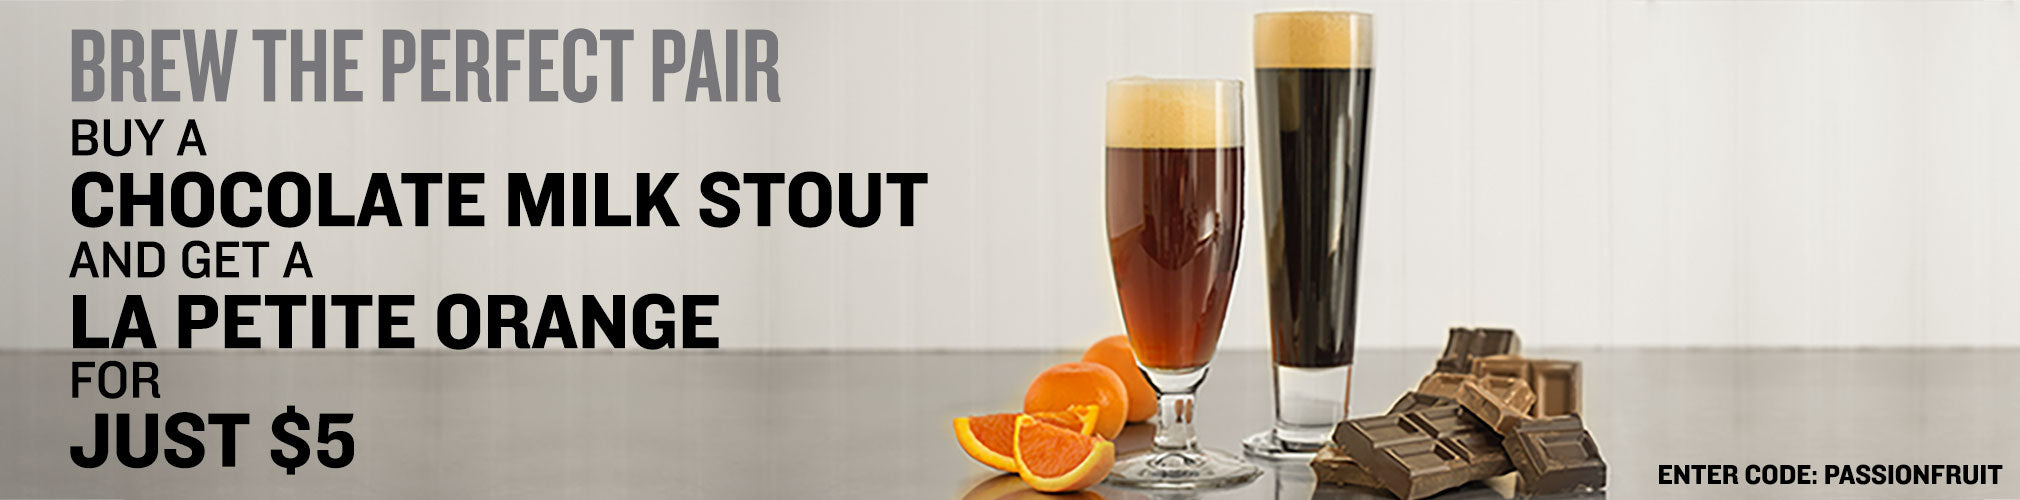 Buy a Chocolate Milk Stout, Get a La Petite Orange for $5